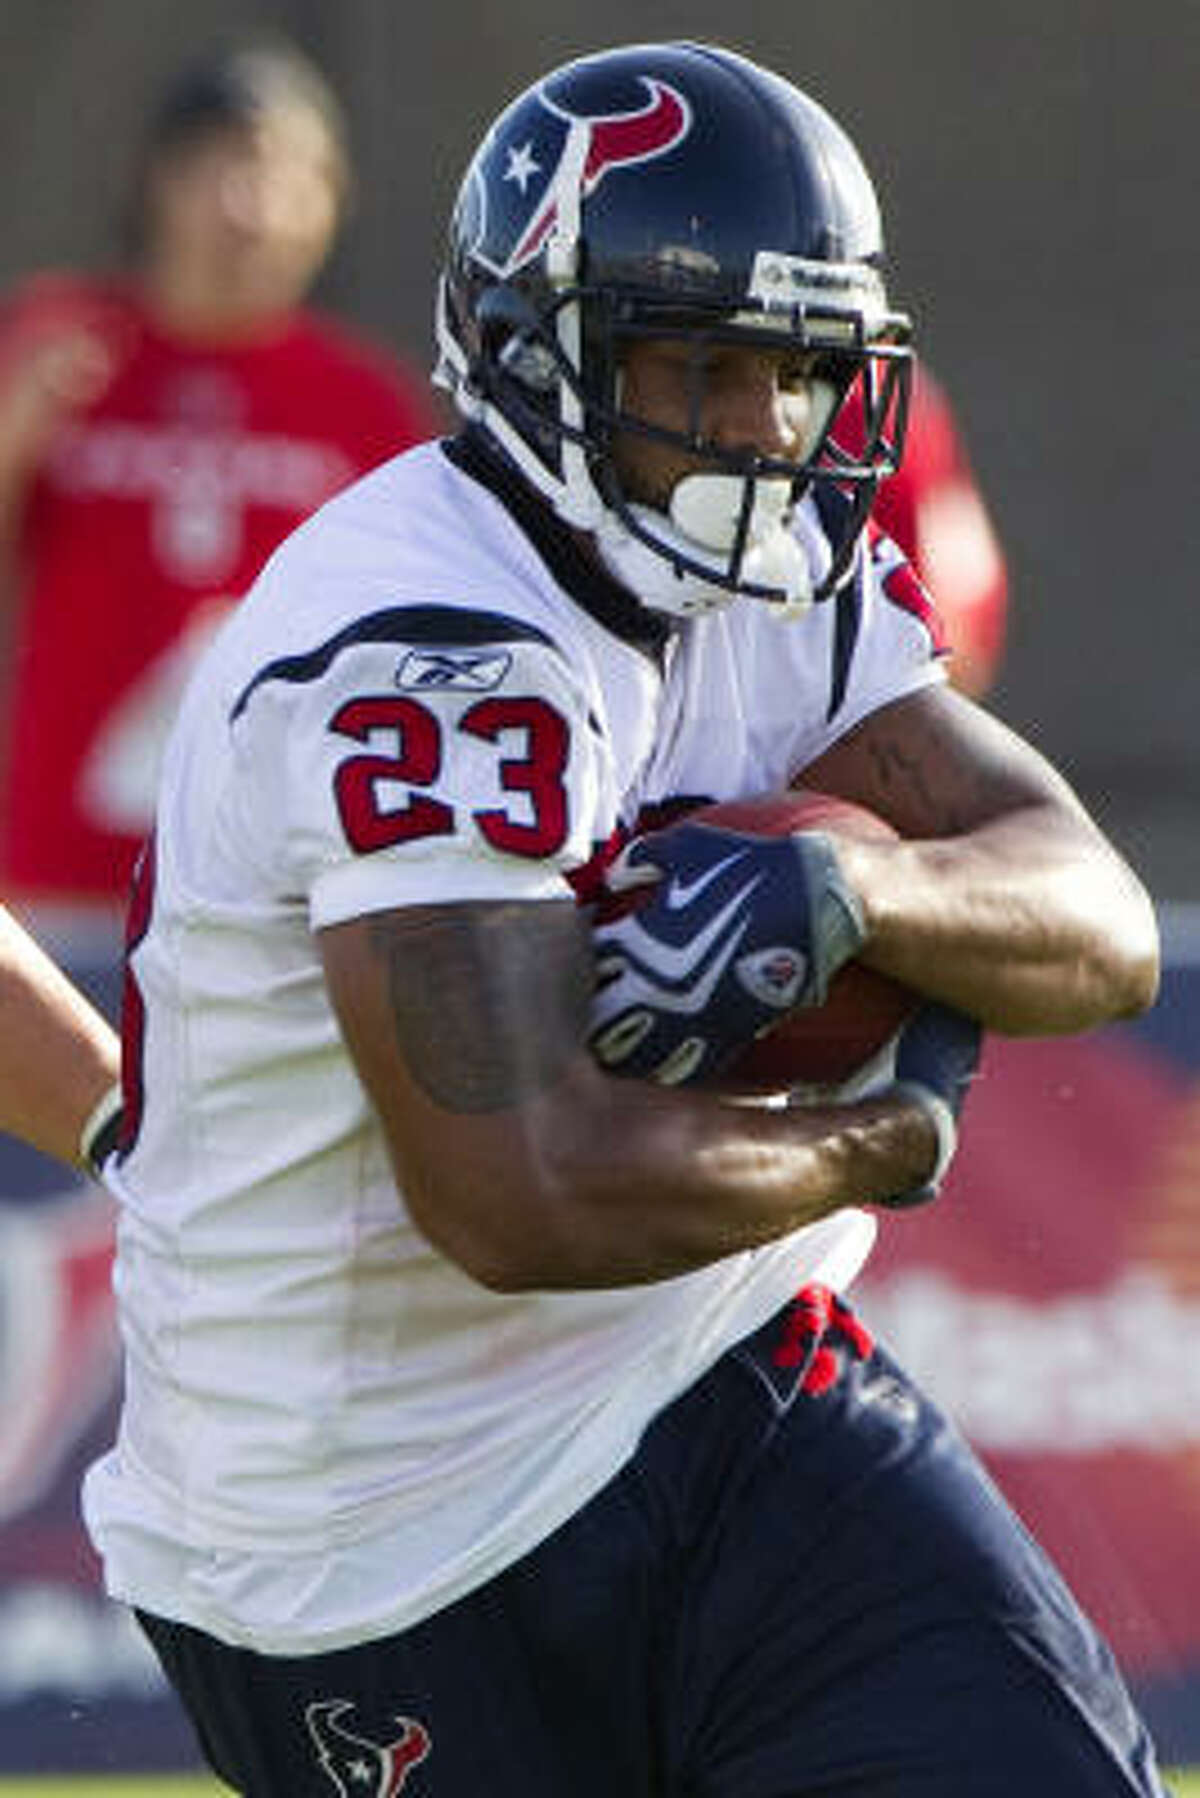 Running back : With five running backs healthy and doing well, general manager Rick Smith and coach Gary Kubiak are going to have their work cut out to determine who gets cut or traded, barring injuries, of course. Right now, all the backs look good in practice, especially 229-pound Arian Foster.